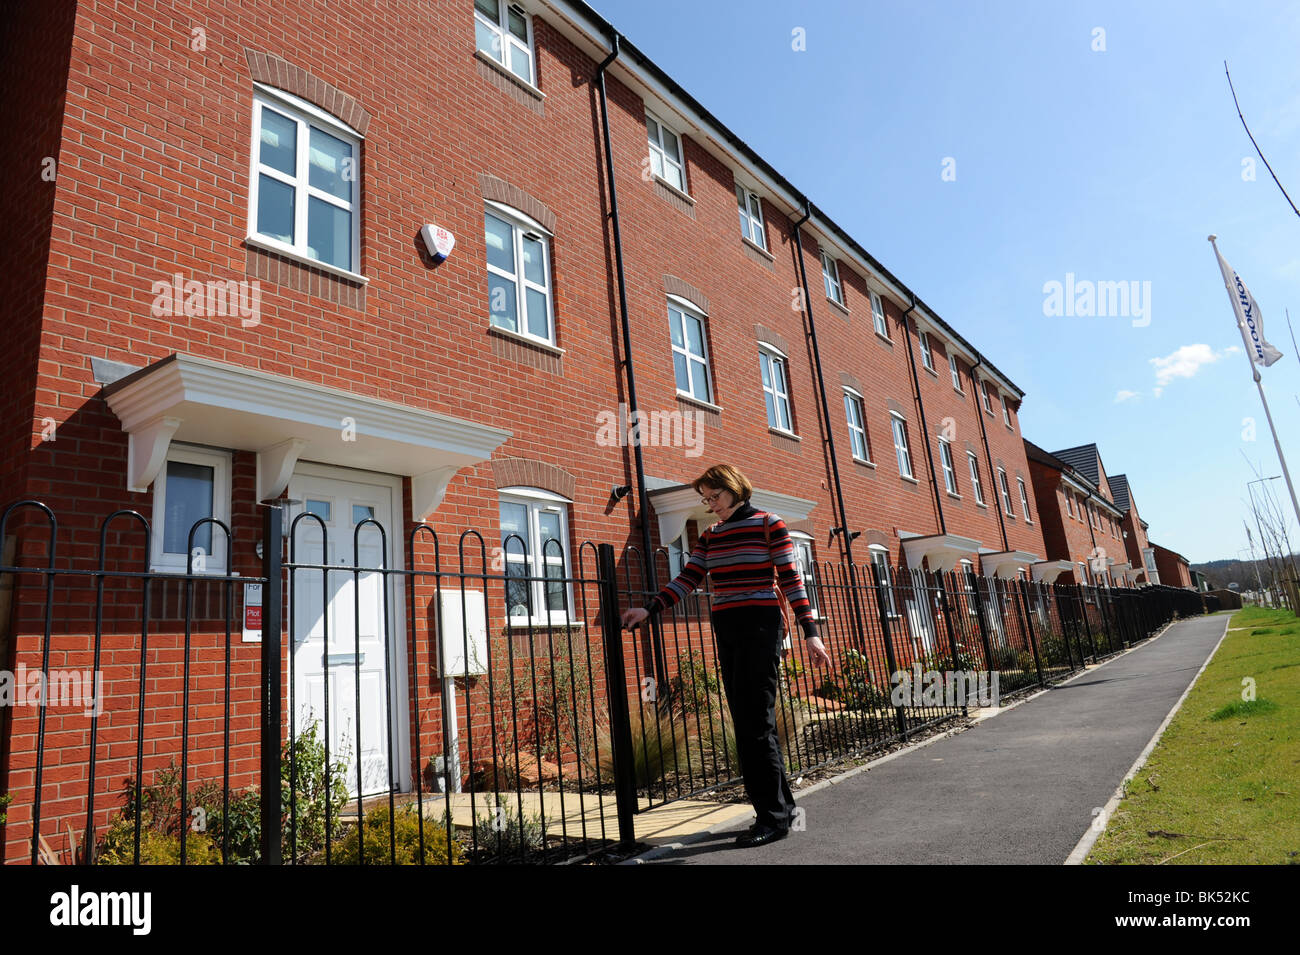 Modern terraced houses at Trench in Telford Shropshire uk Stock Photo